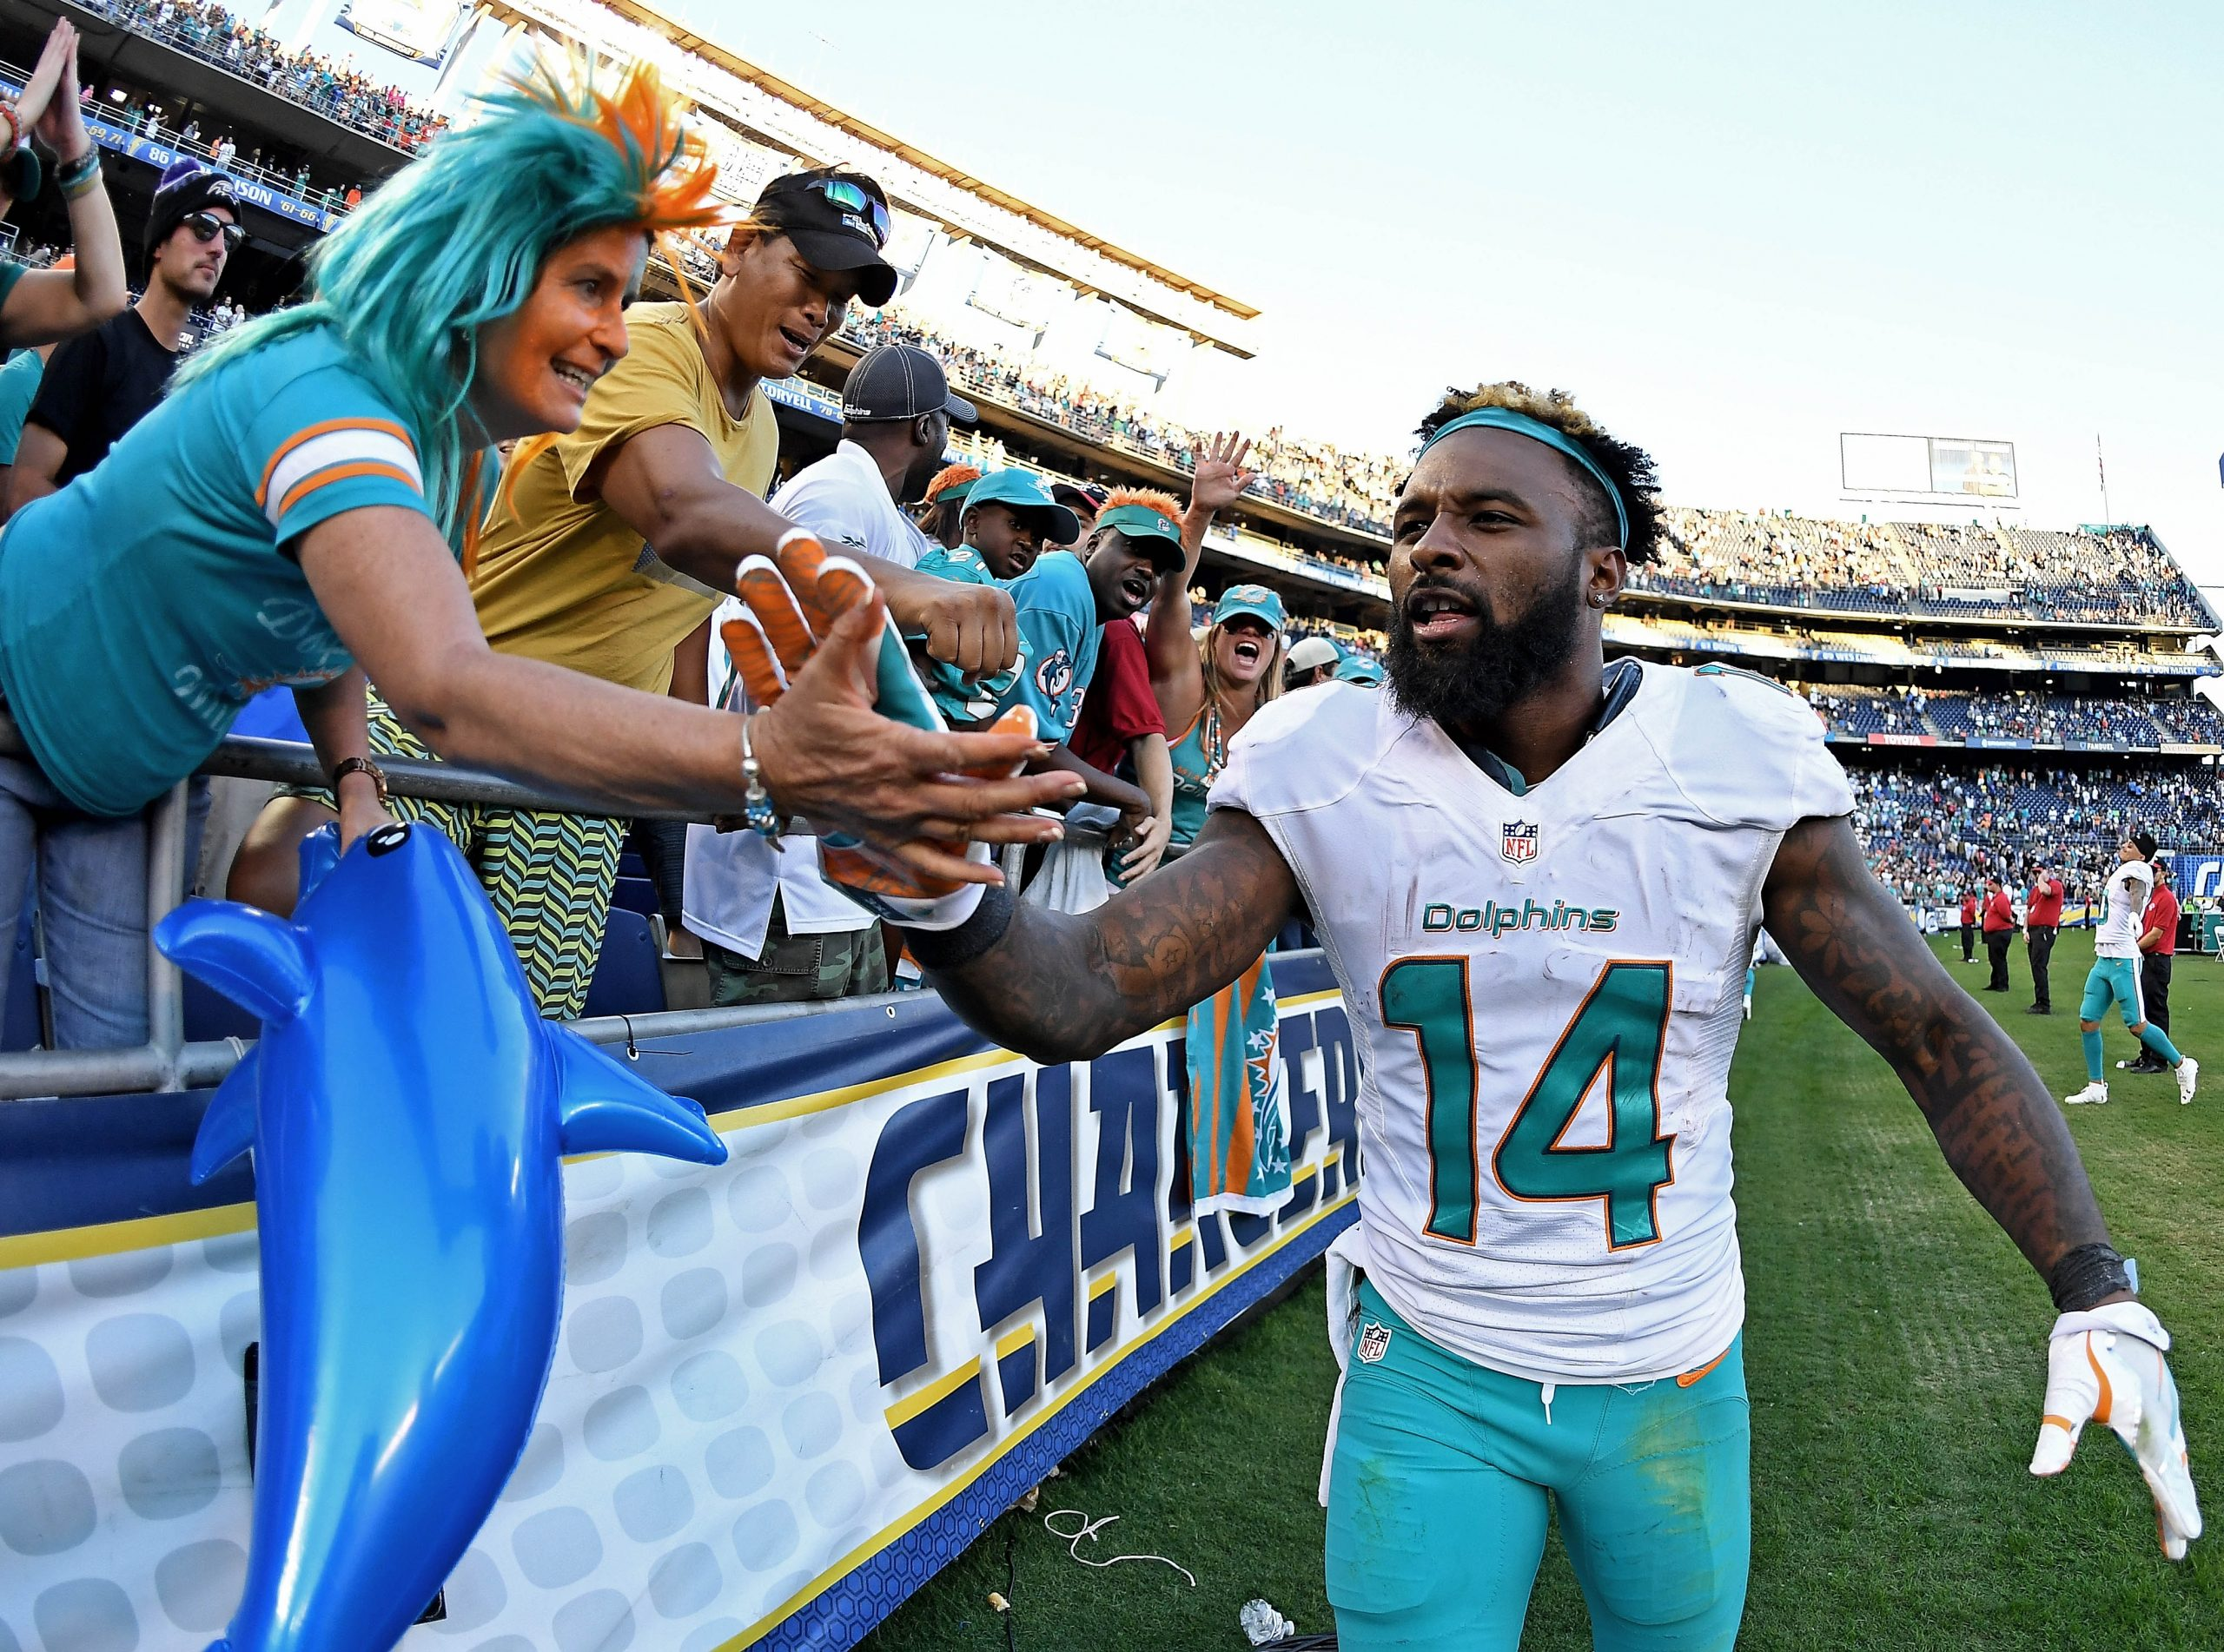 Five-Game Winning Streak Earns Miami Dolphins Respect From intended for When Did The Miami Dolphins Win A Super Bowl